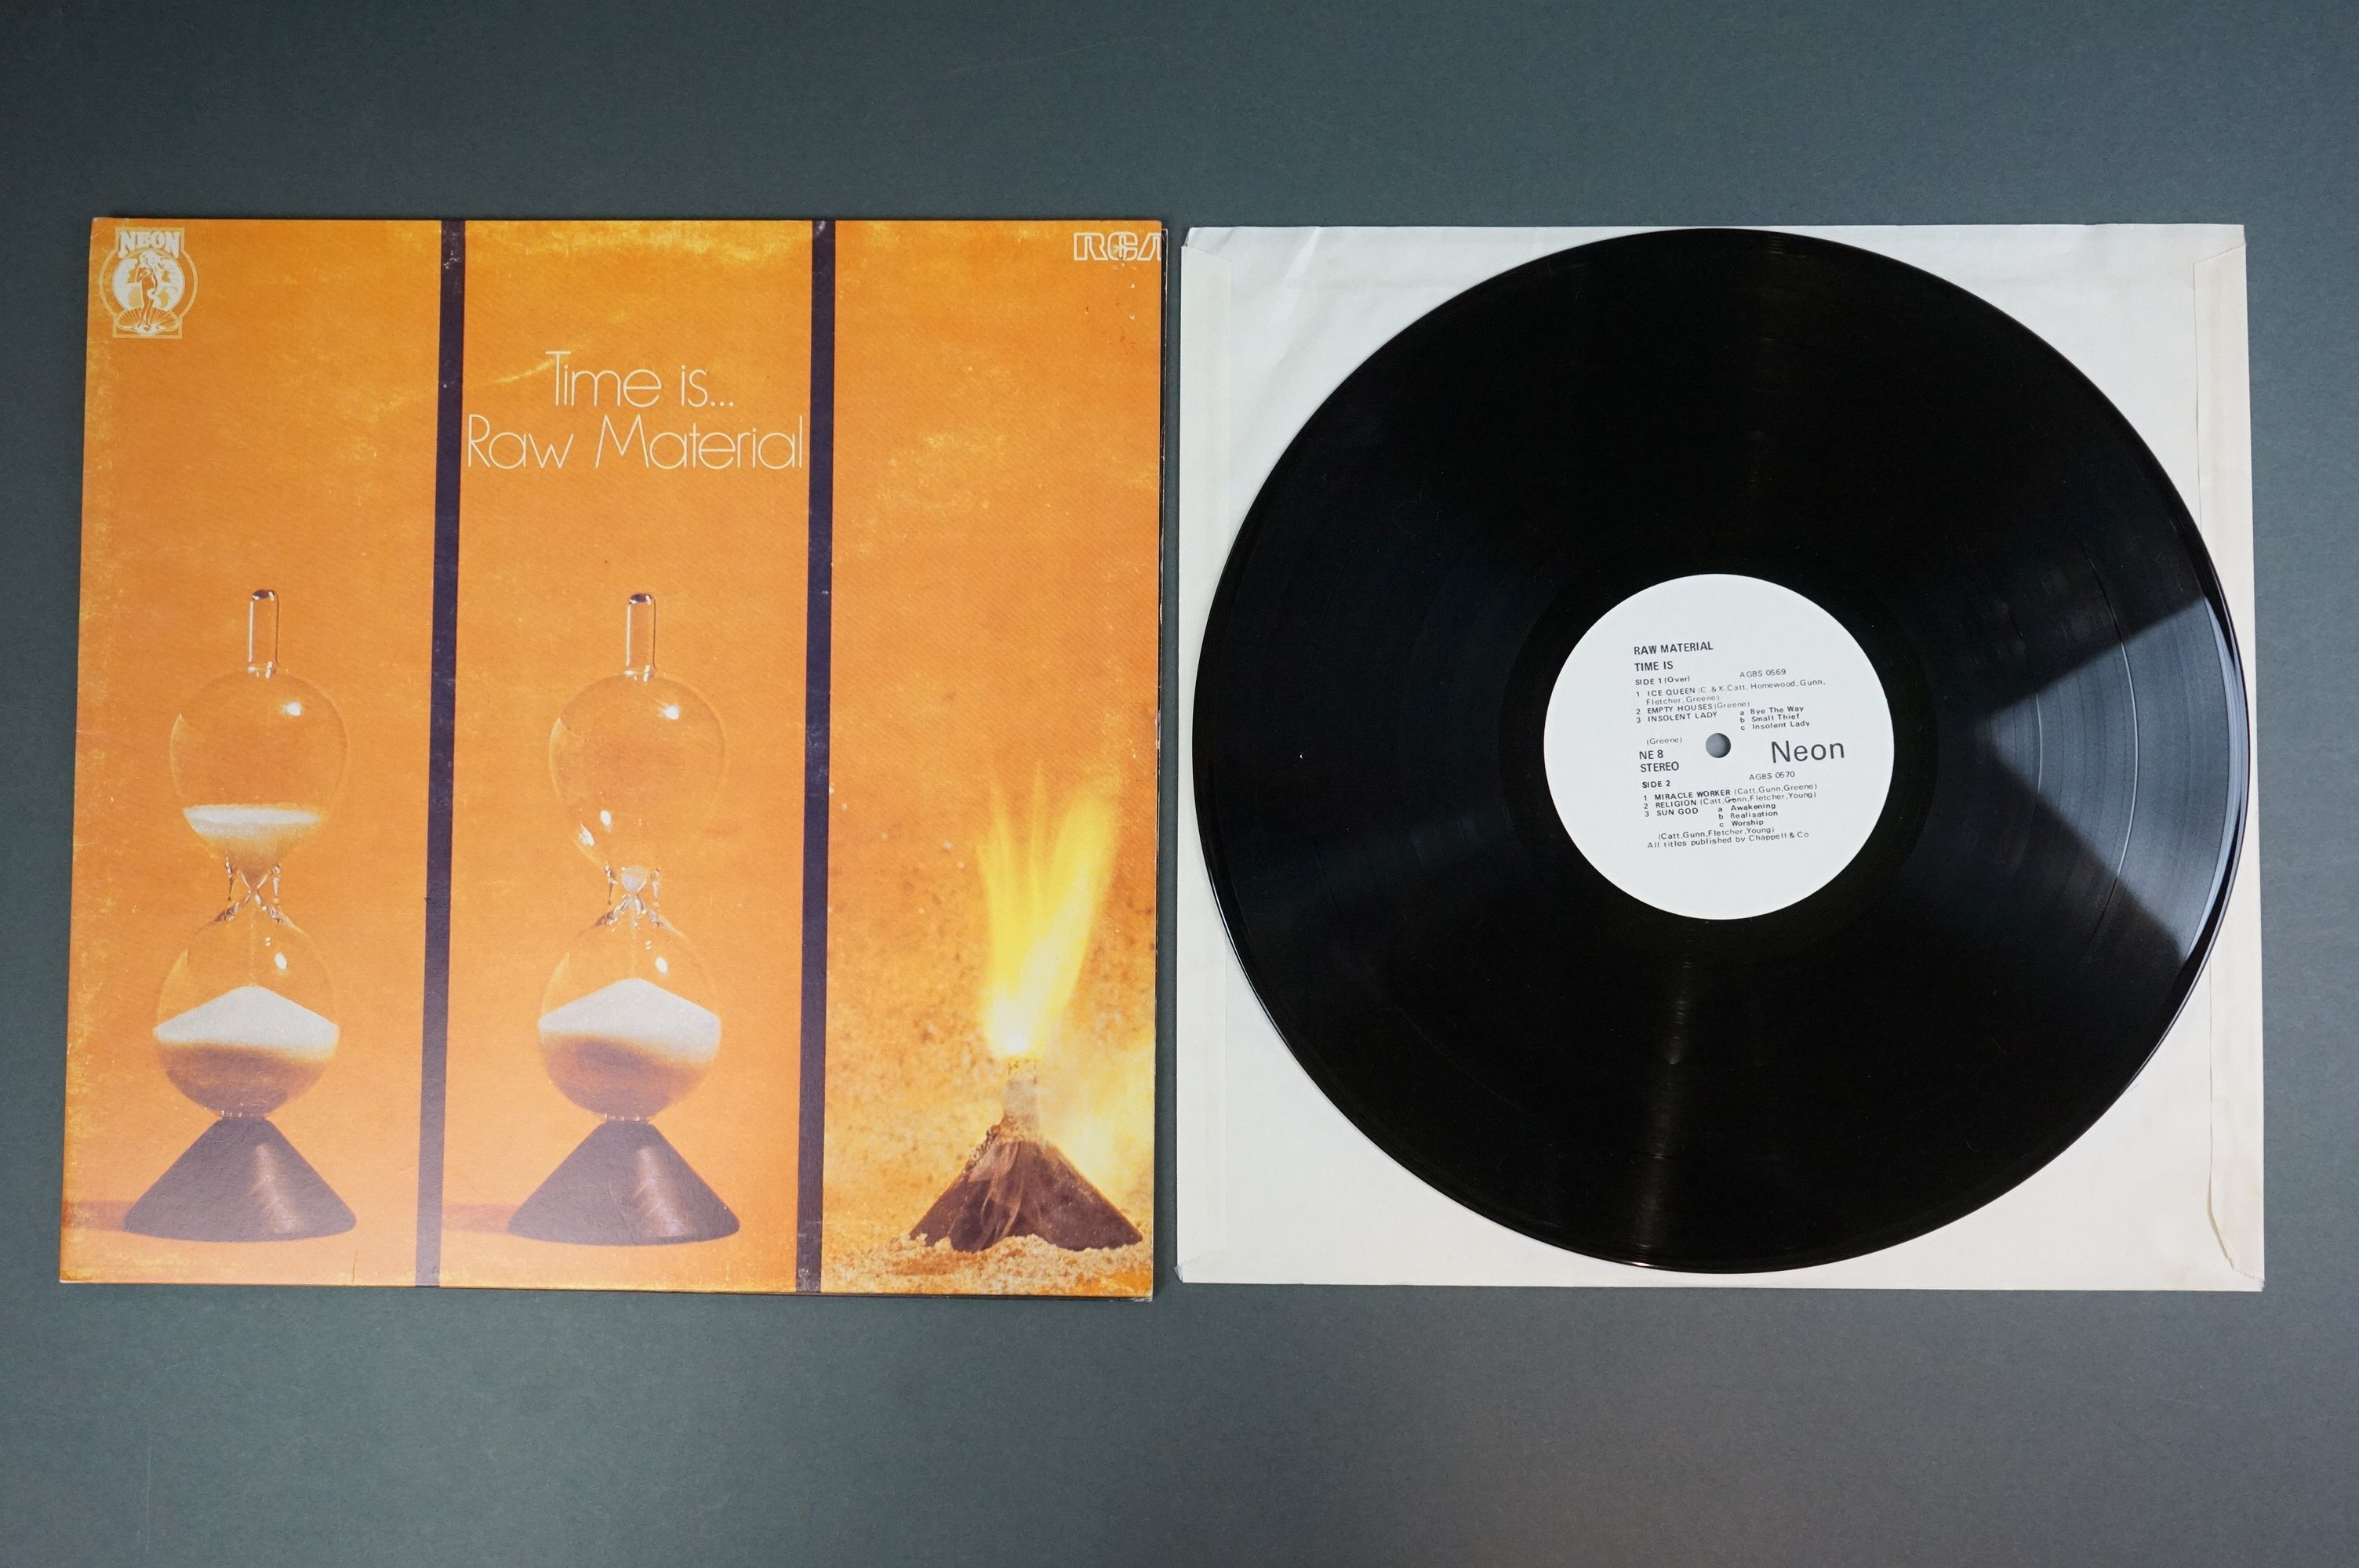 Vinyl - Two unofficial Raw Materials release LPs to include Time Is (NE8) and self titled (Z1006), - Image 2 of 6